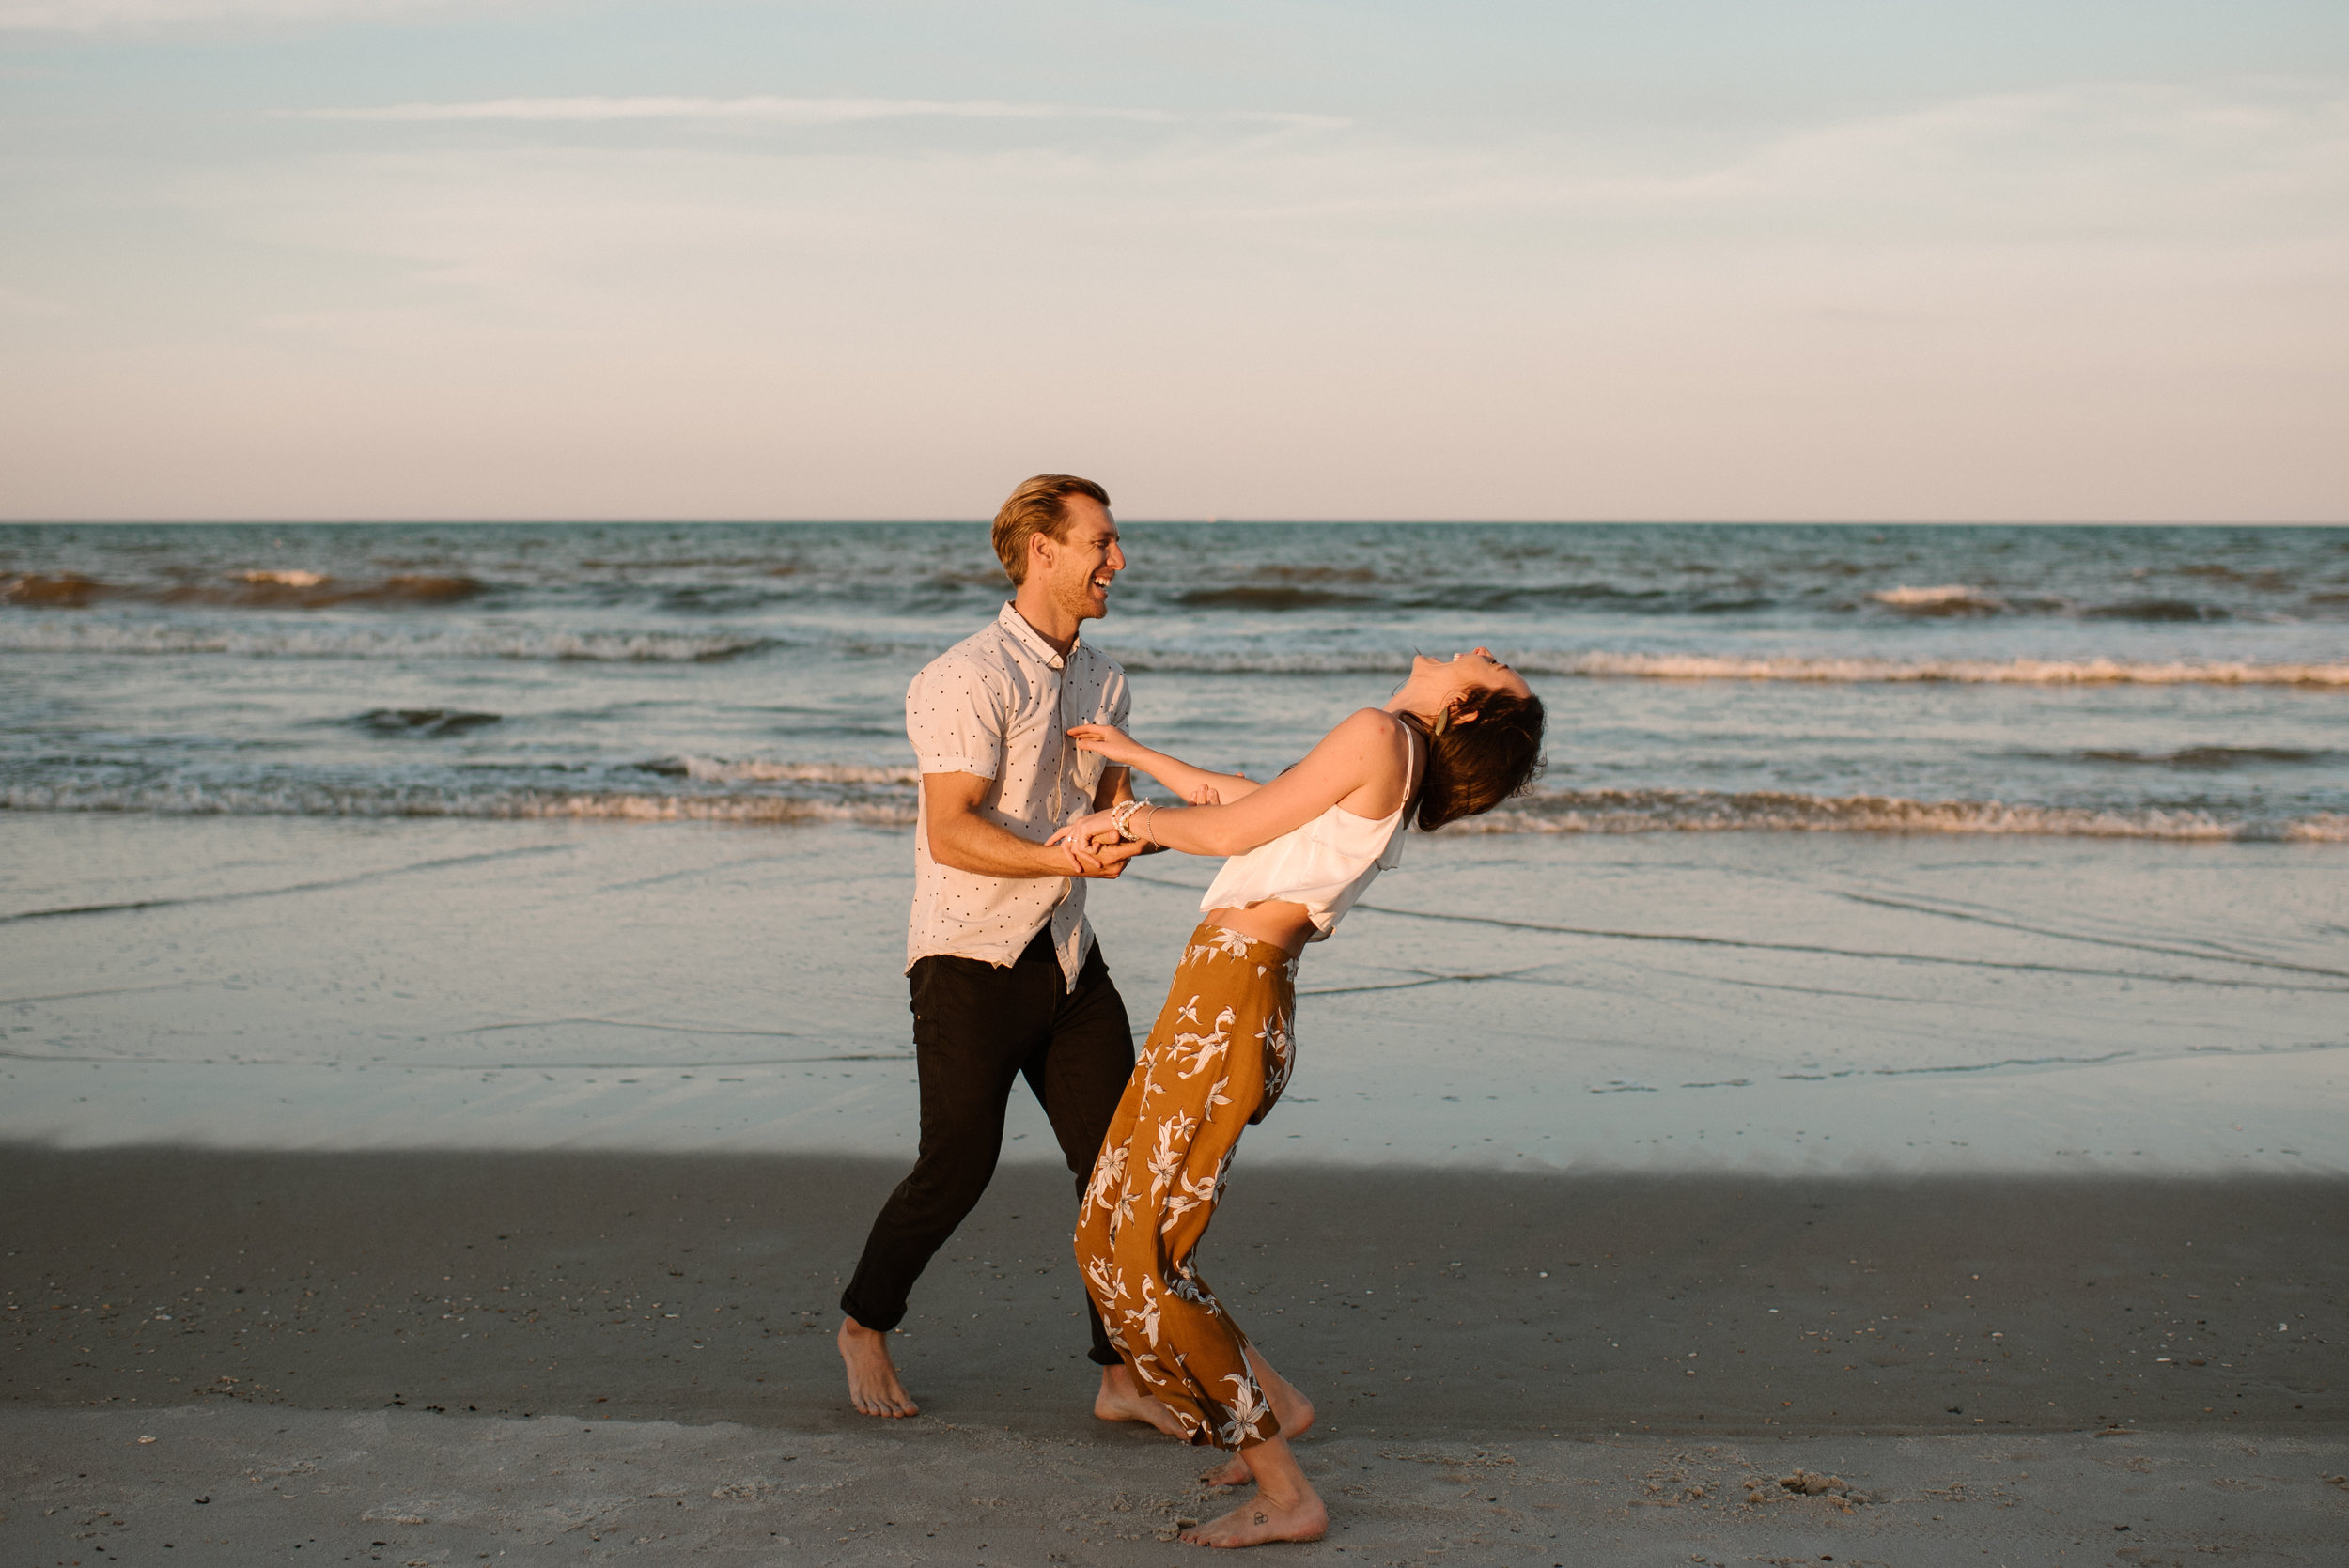 atlantic-beach-engagement-photos-heather-and-cody-105.jpg